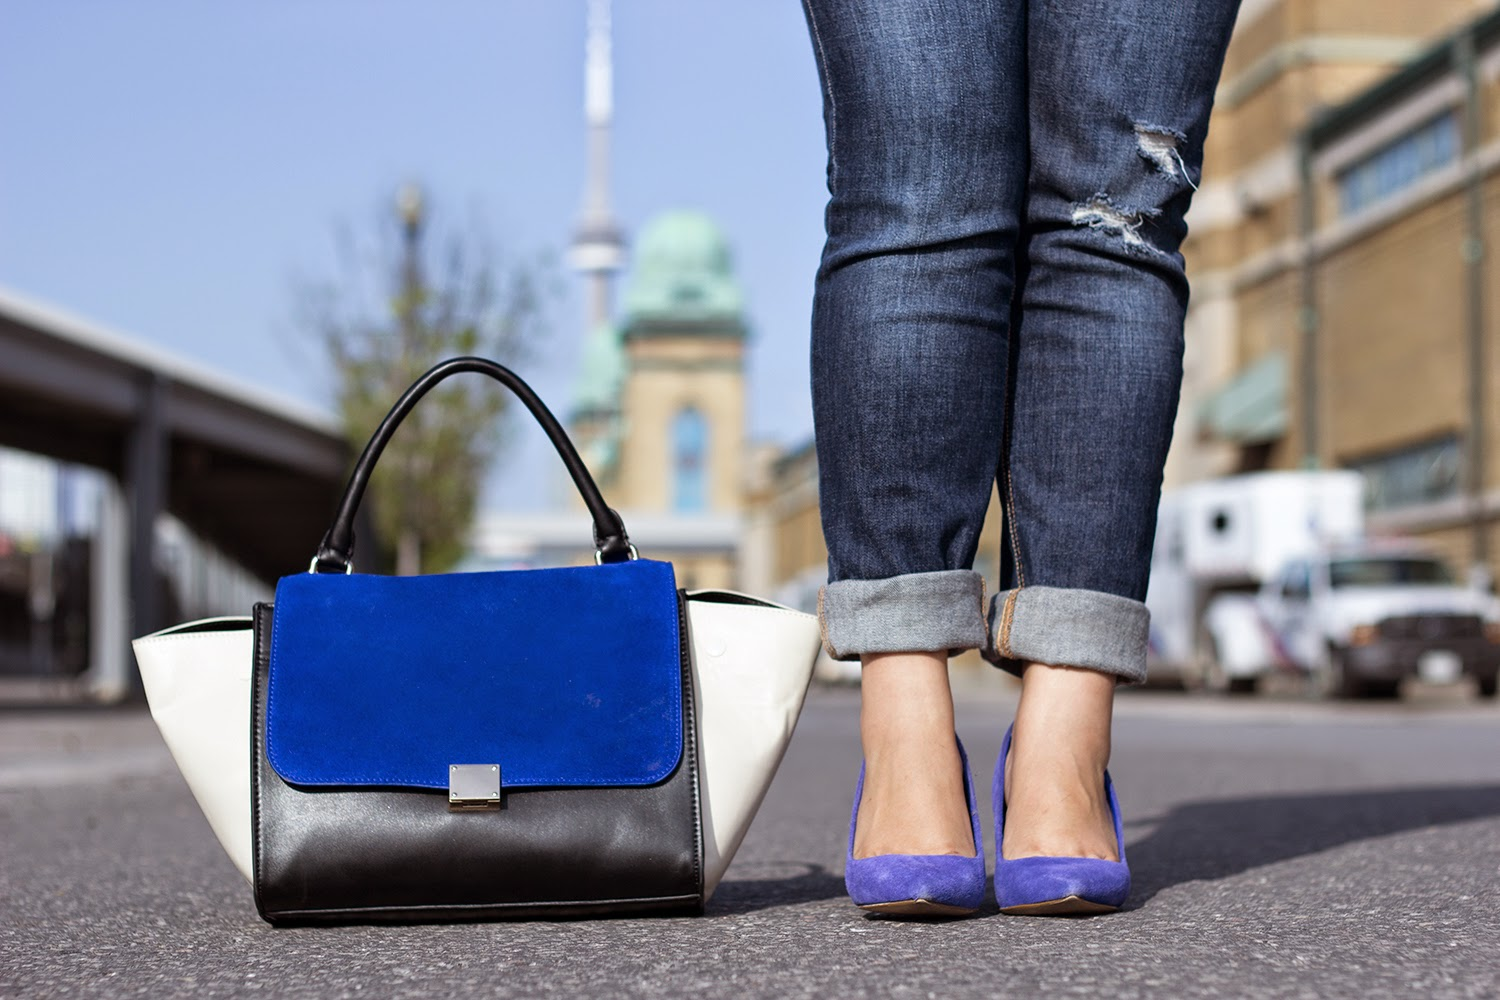 Le-Chateau-Blue-Pumps, ChicWish-Celine-like-bag